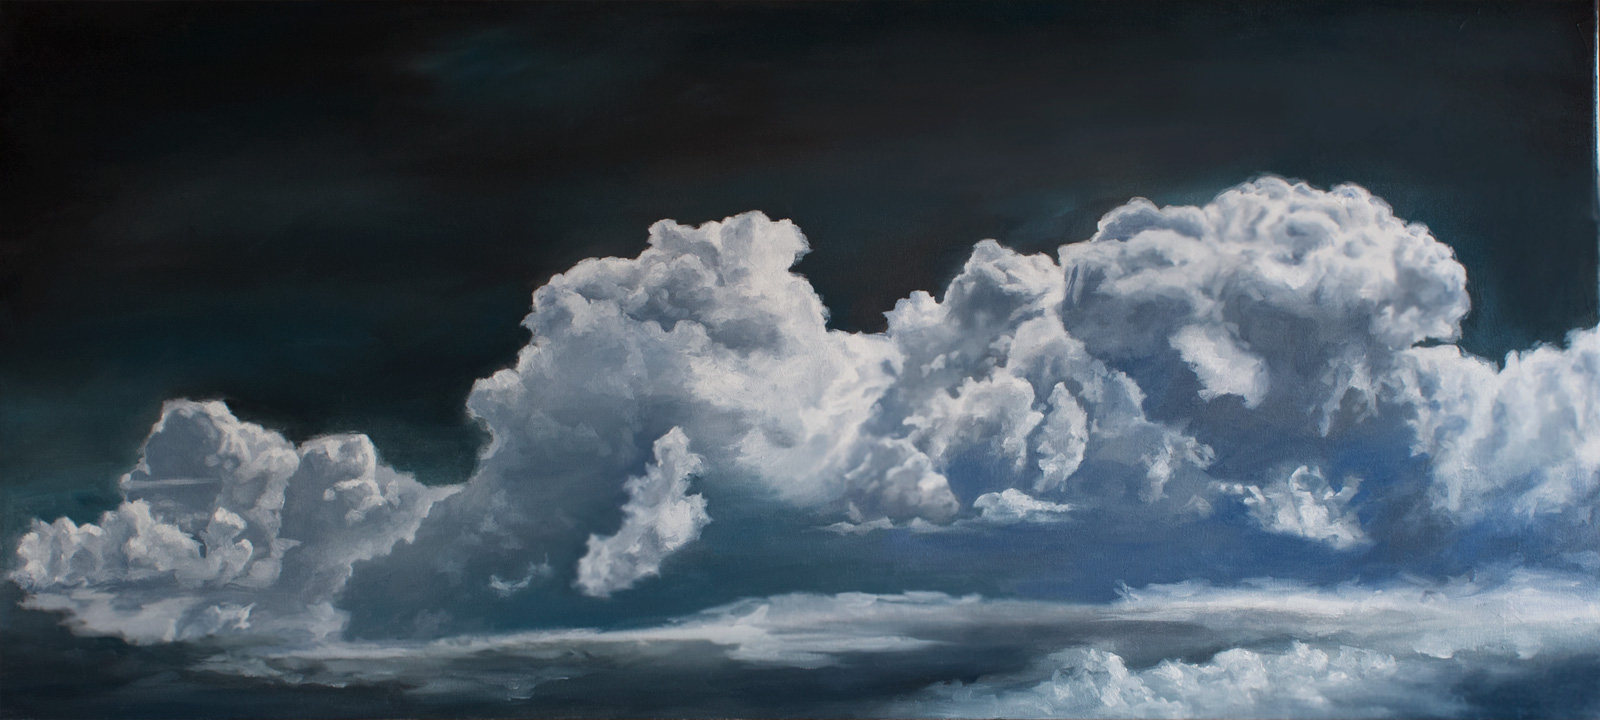 Painting Storm Clouds In Acrylic